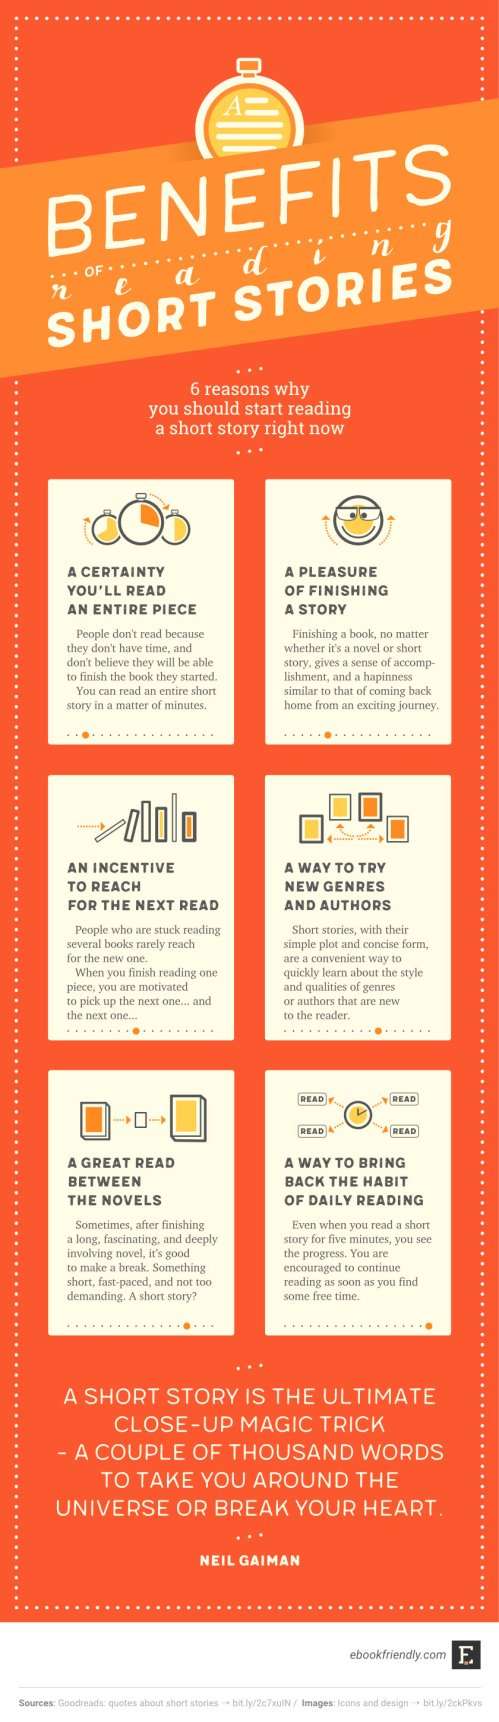 6-benefits-of-reading-short-stories-full-size-infographic